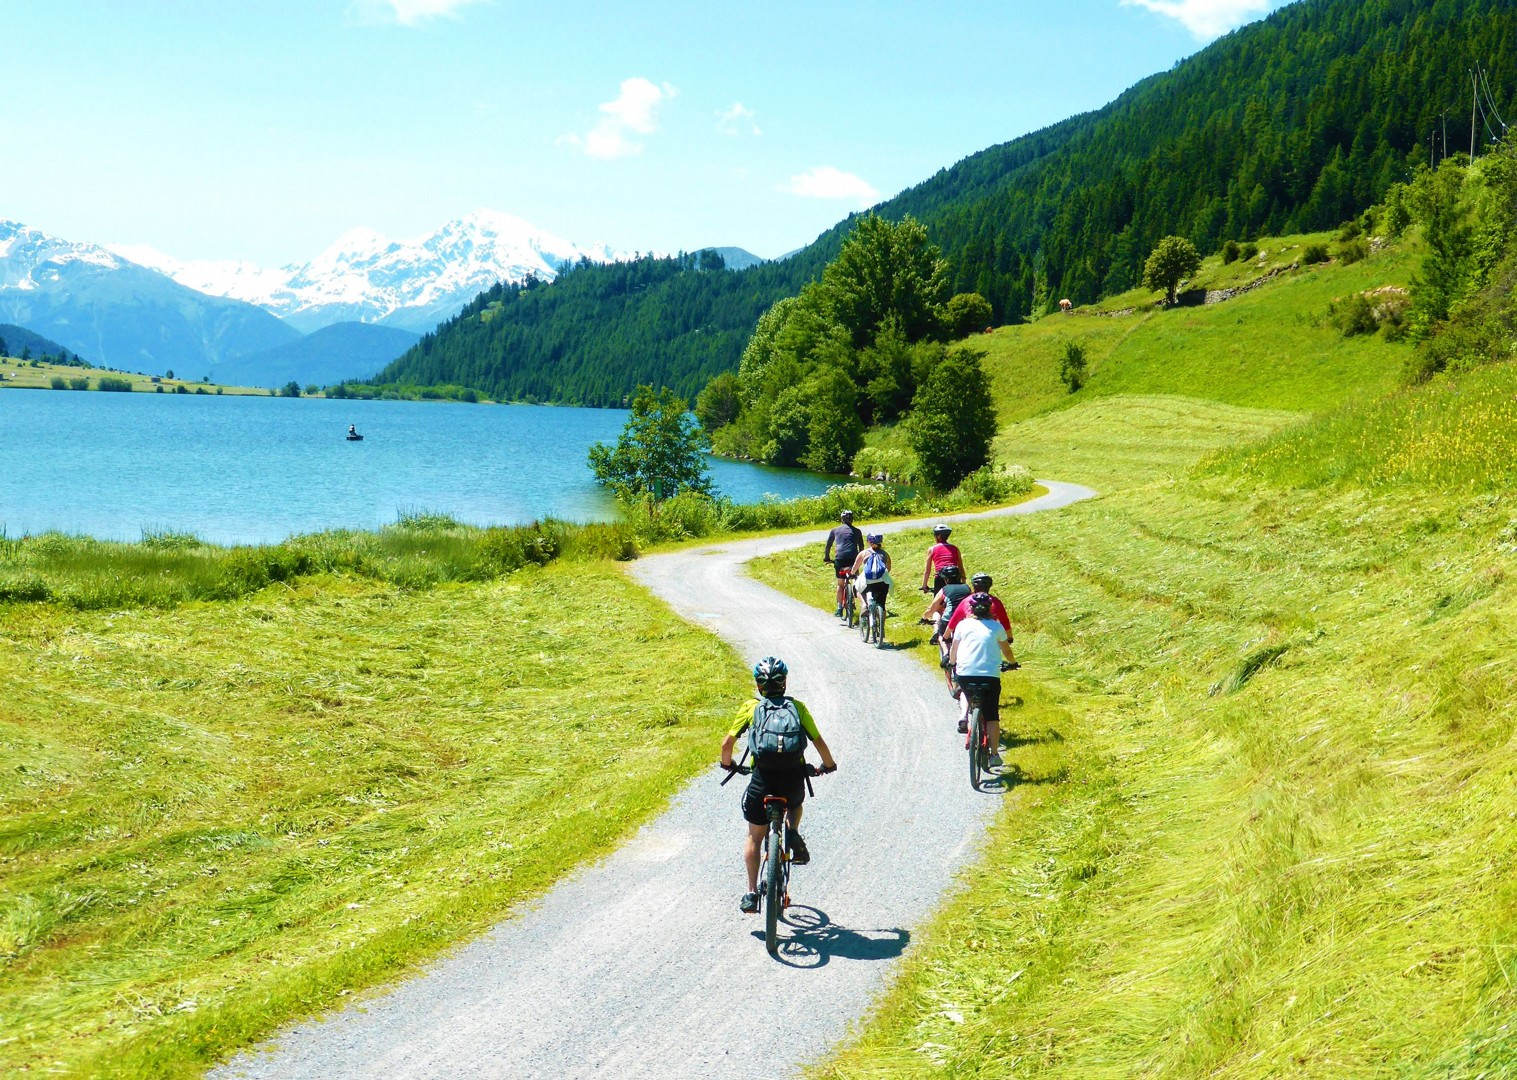 _Holiday.545.19527.jpg - Austria - Ten Lakes Tour - Self-Guided Leisure Cycling Holiday - Leisure Cycling